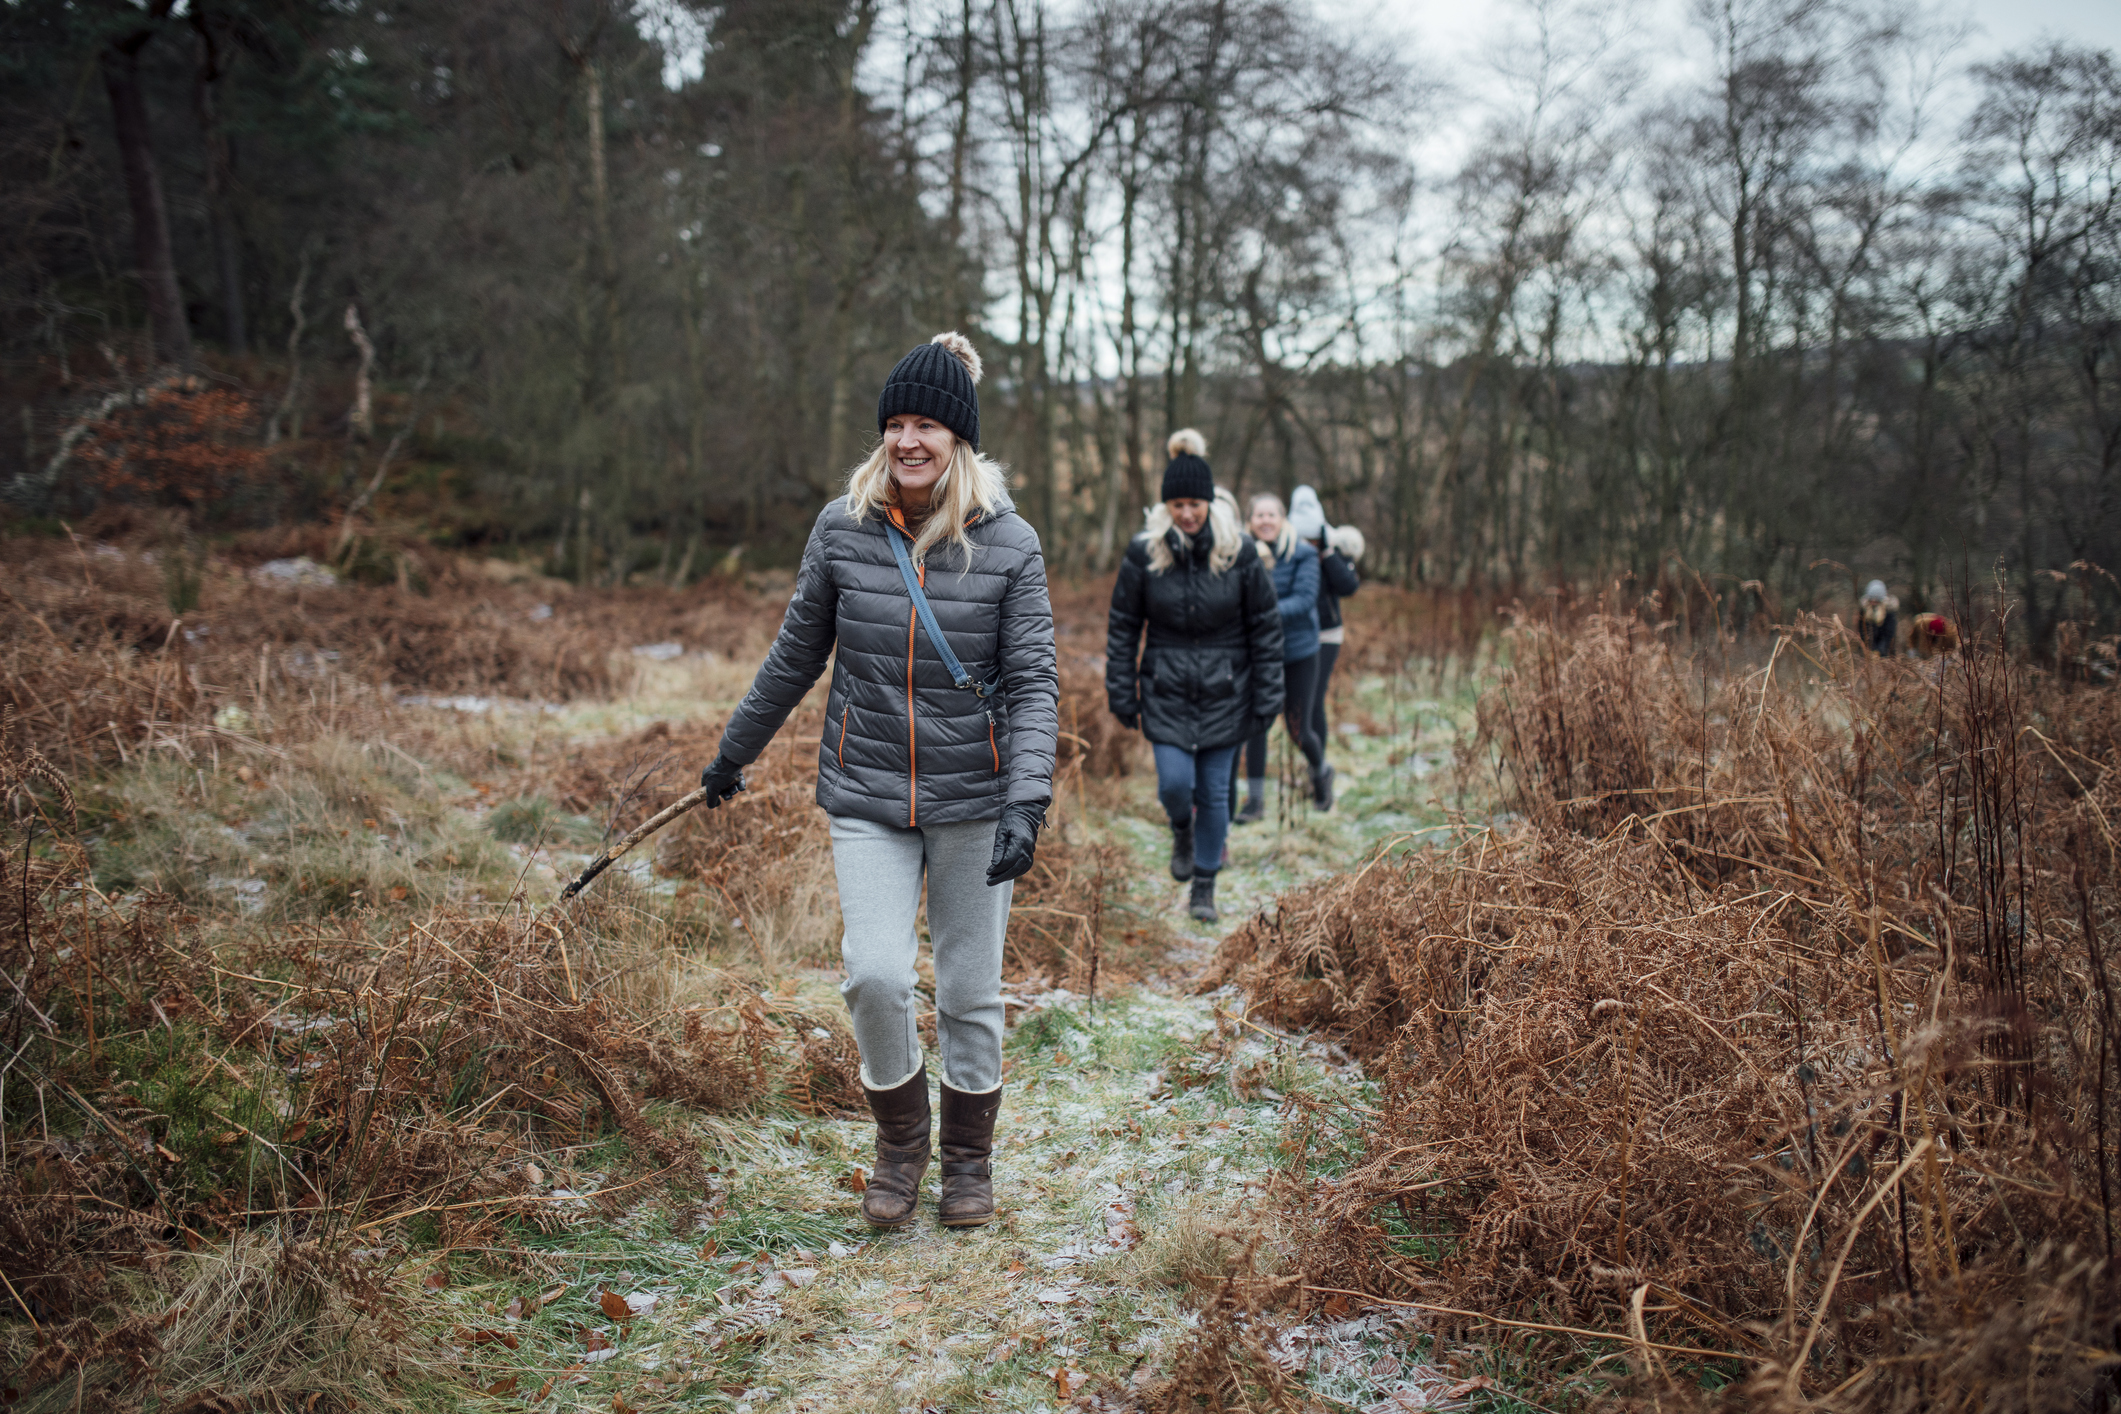 Four women are enjoying a walk through the woodland together in winter.